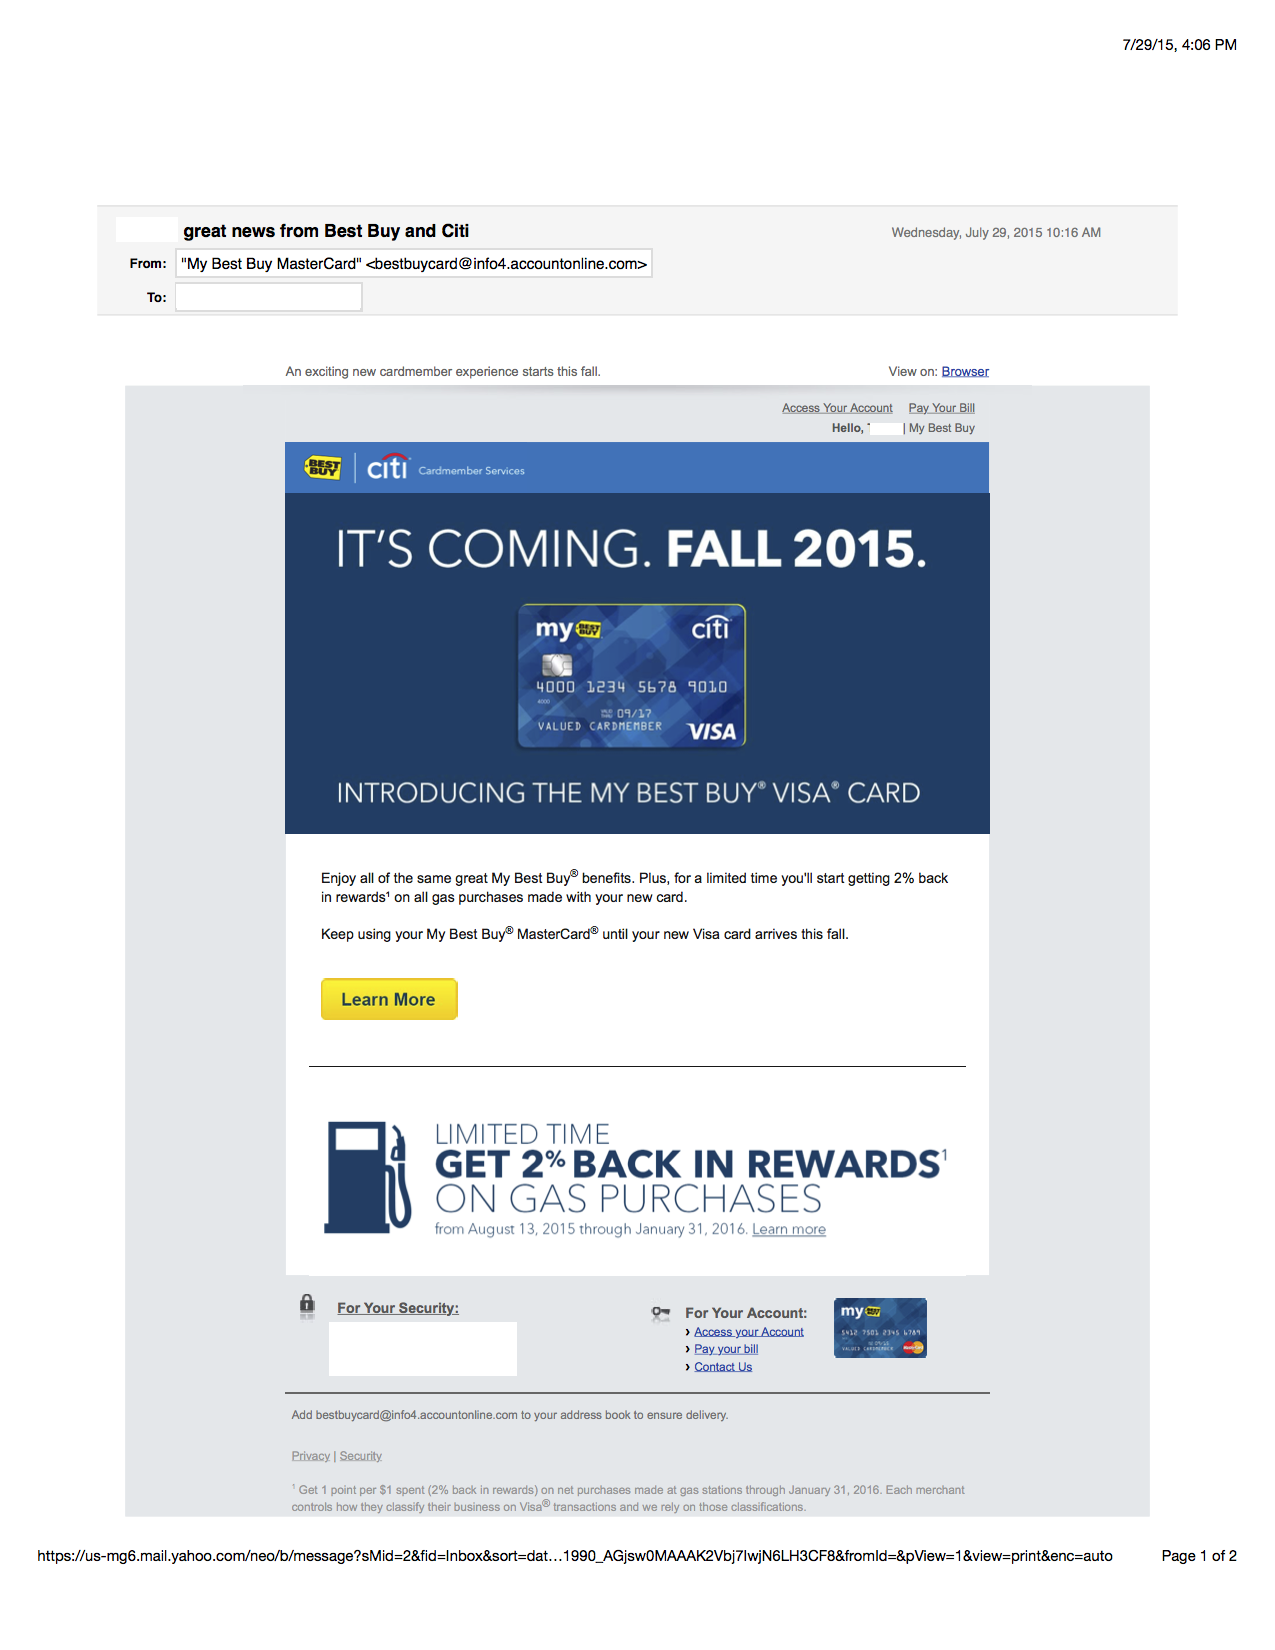 how to apply for a best buy card